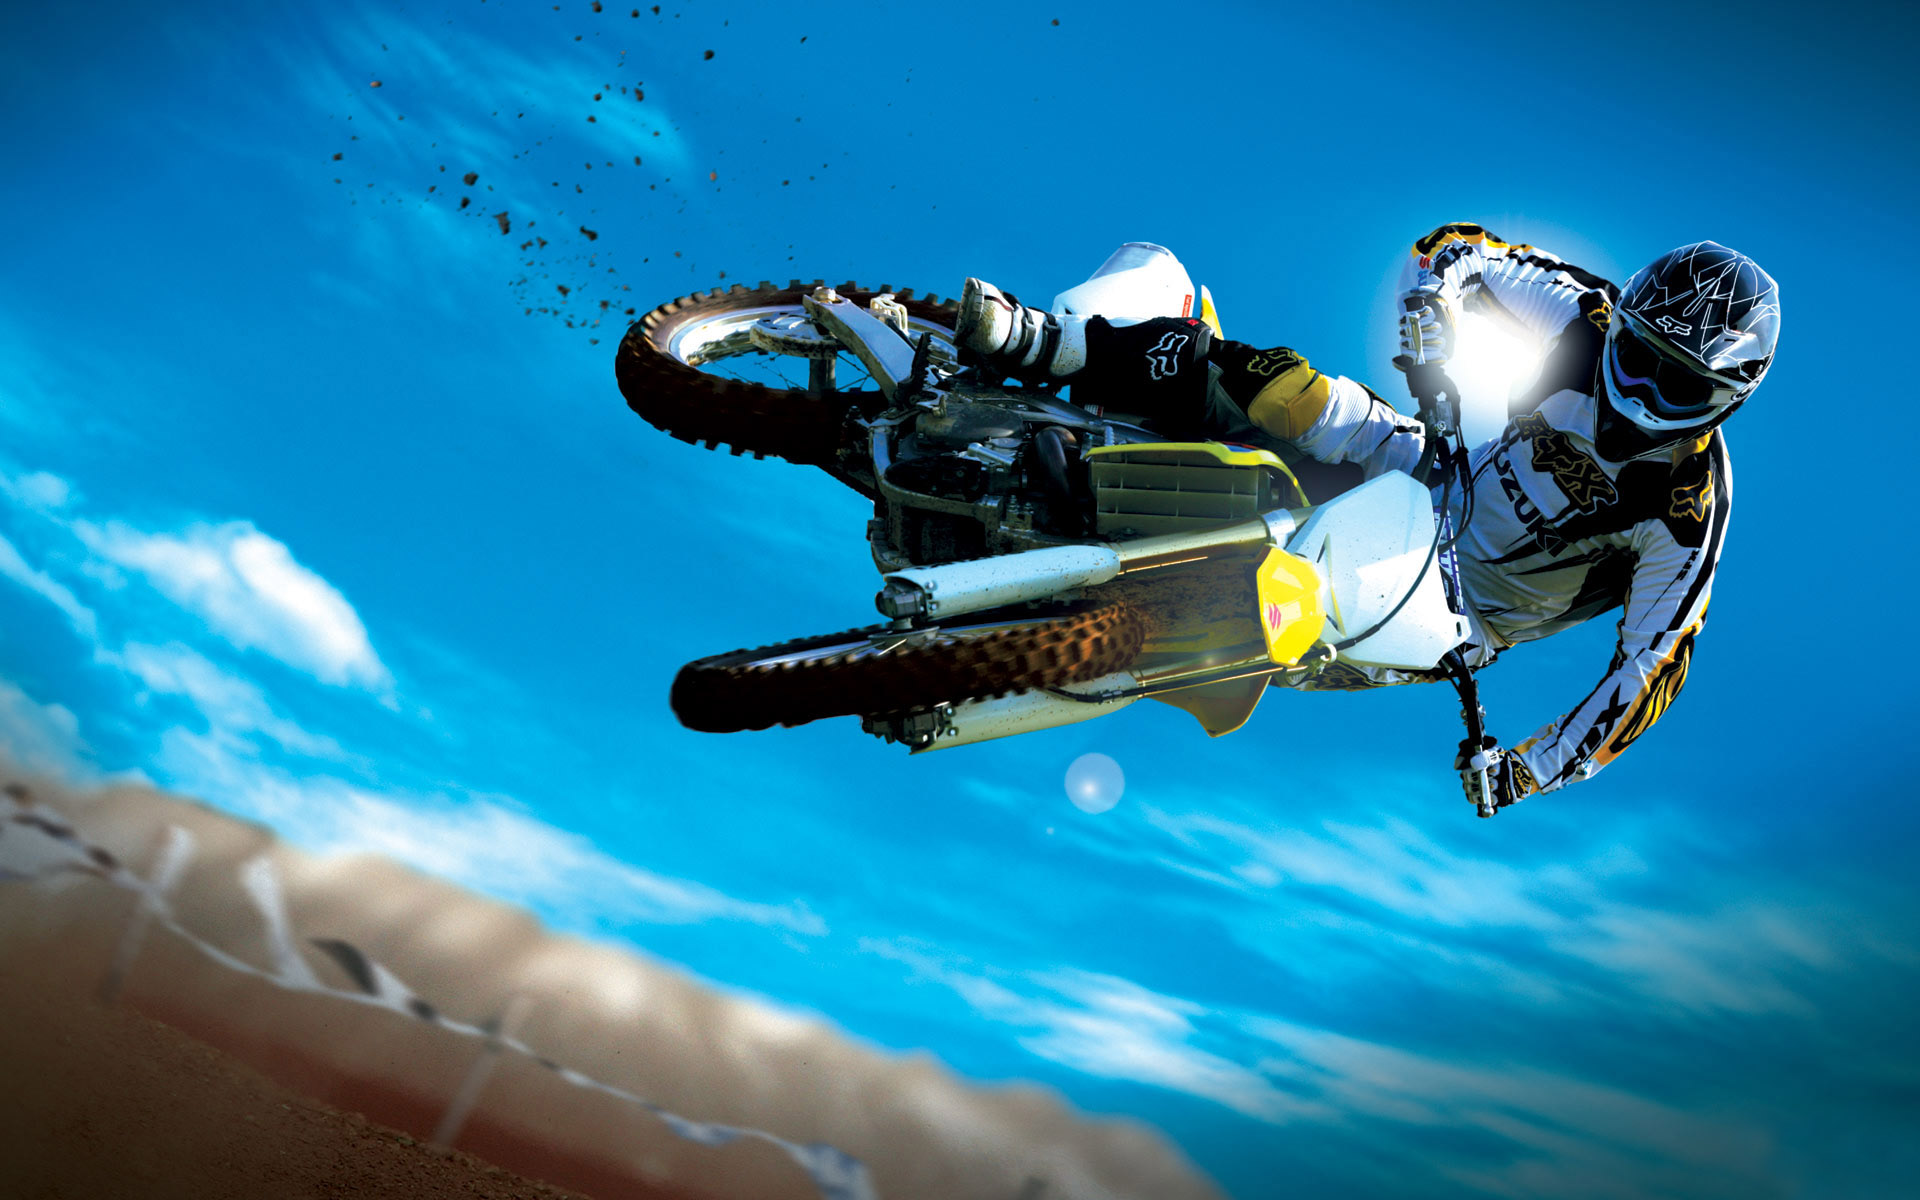 Amazing Motocross Bike Stunt Wallpapers | HD Wallpapers